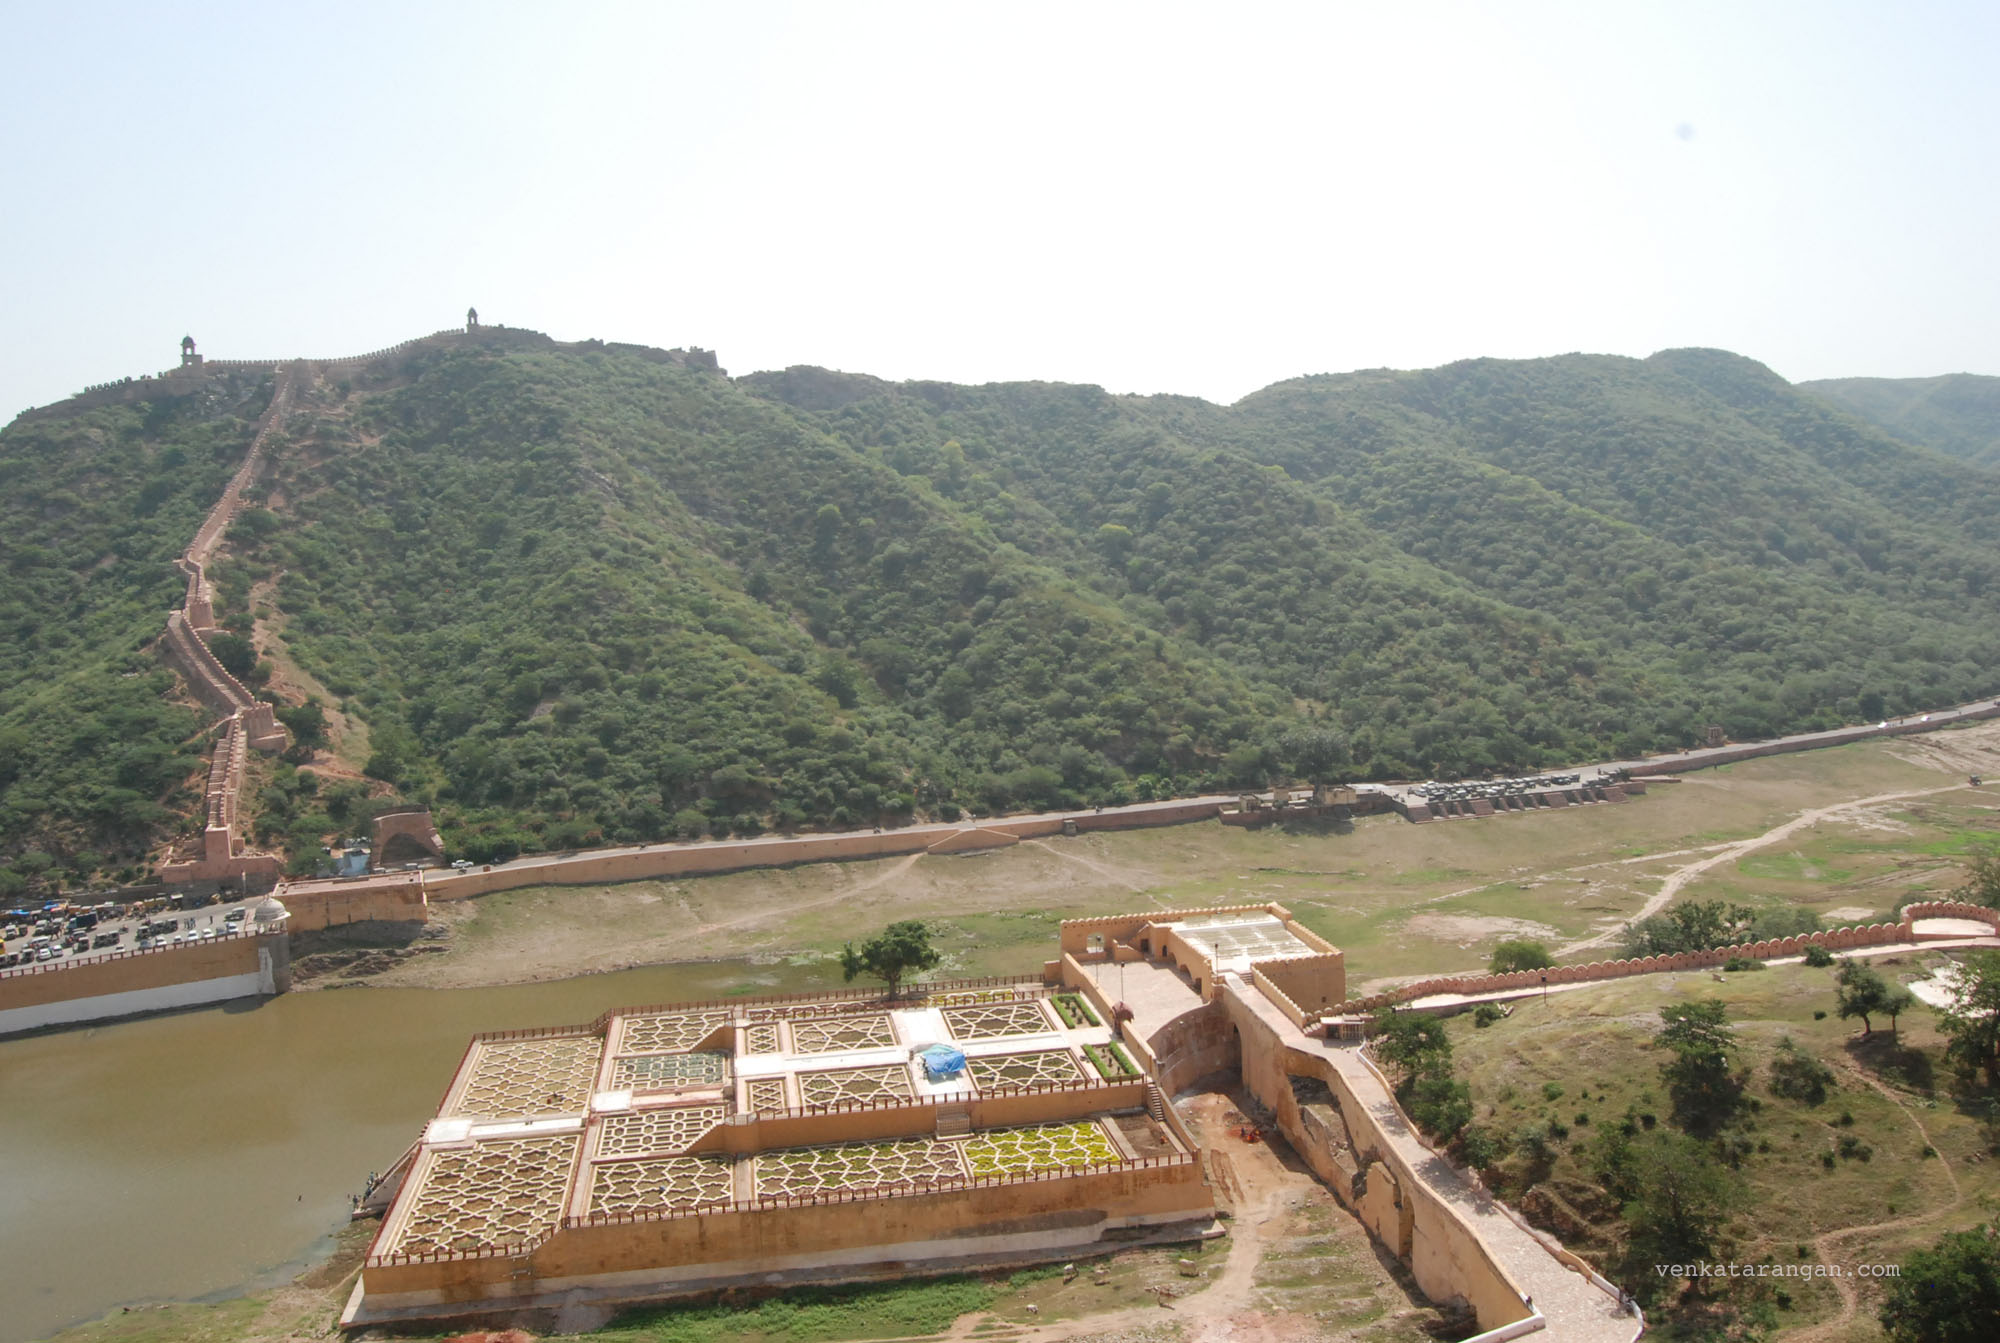 The surrounding moat for protection of the Amer fort